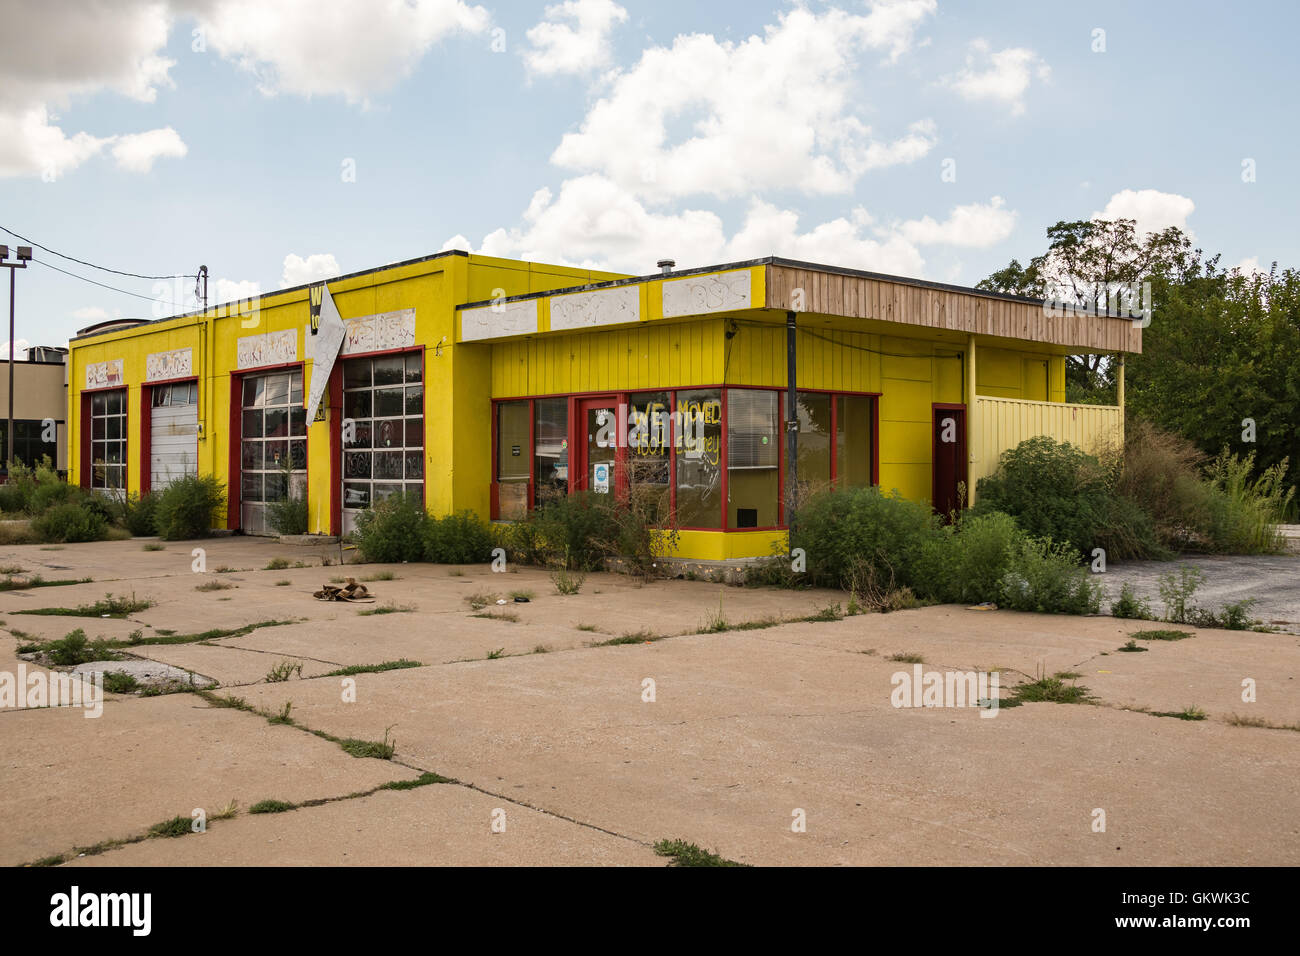 Abandoned Gas Station Sale In High Resolution Stock Photography And Images Alamy